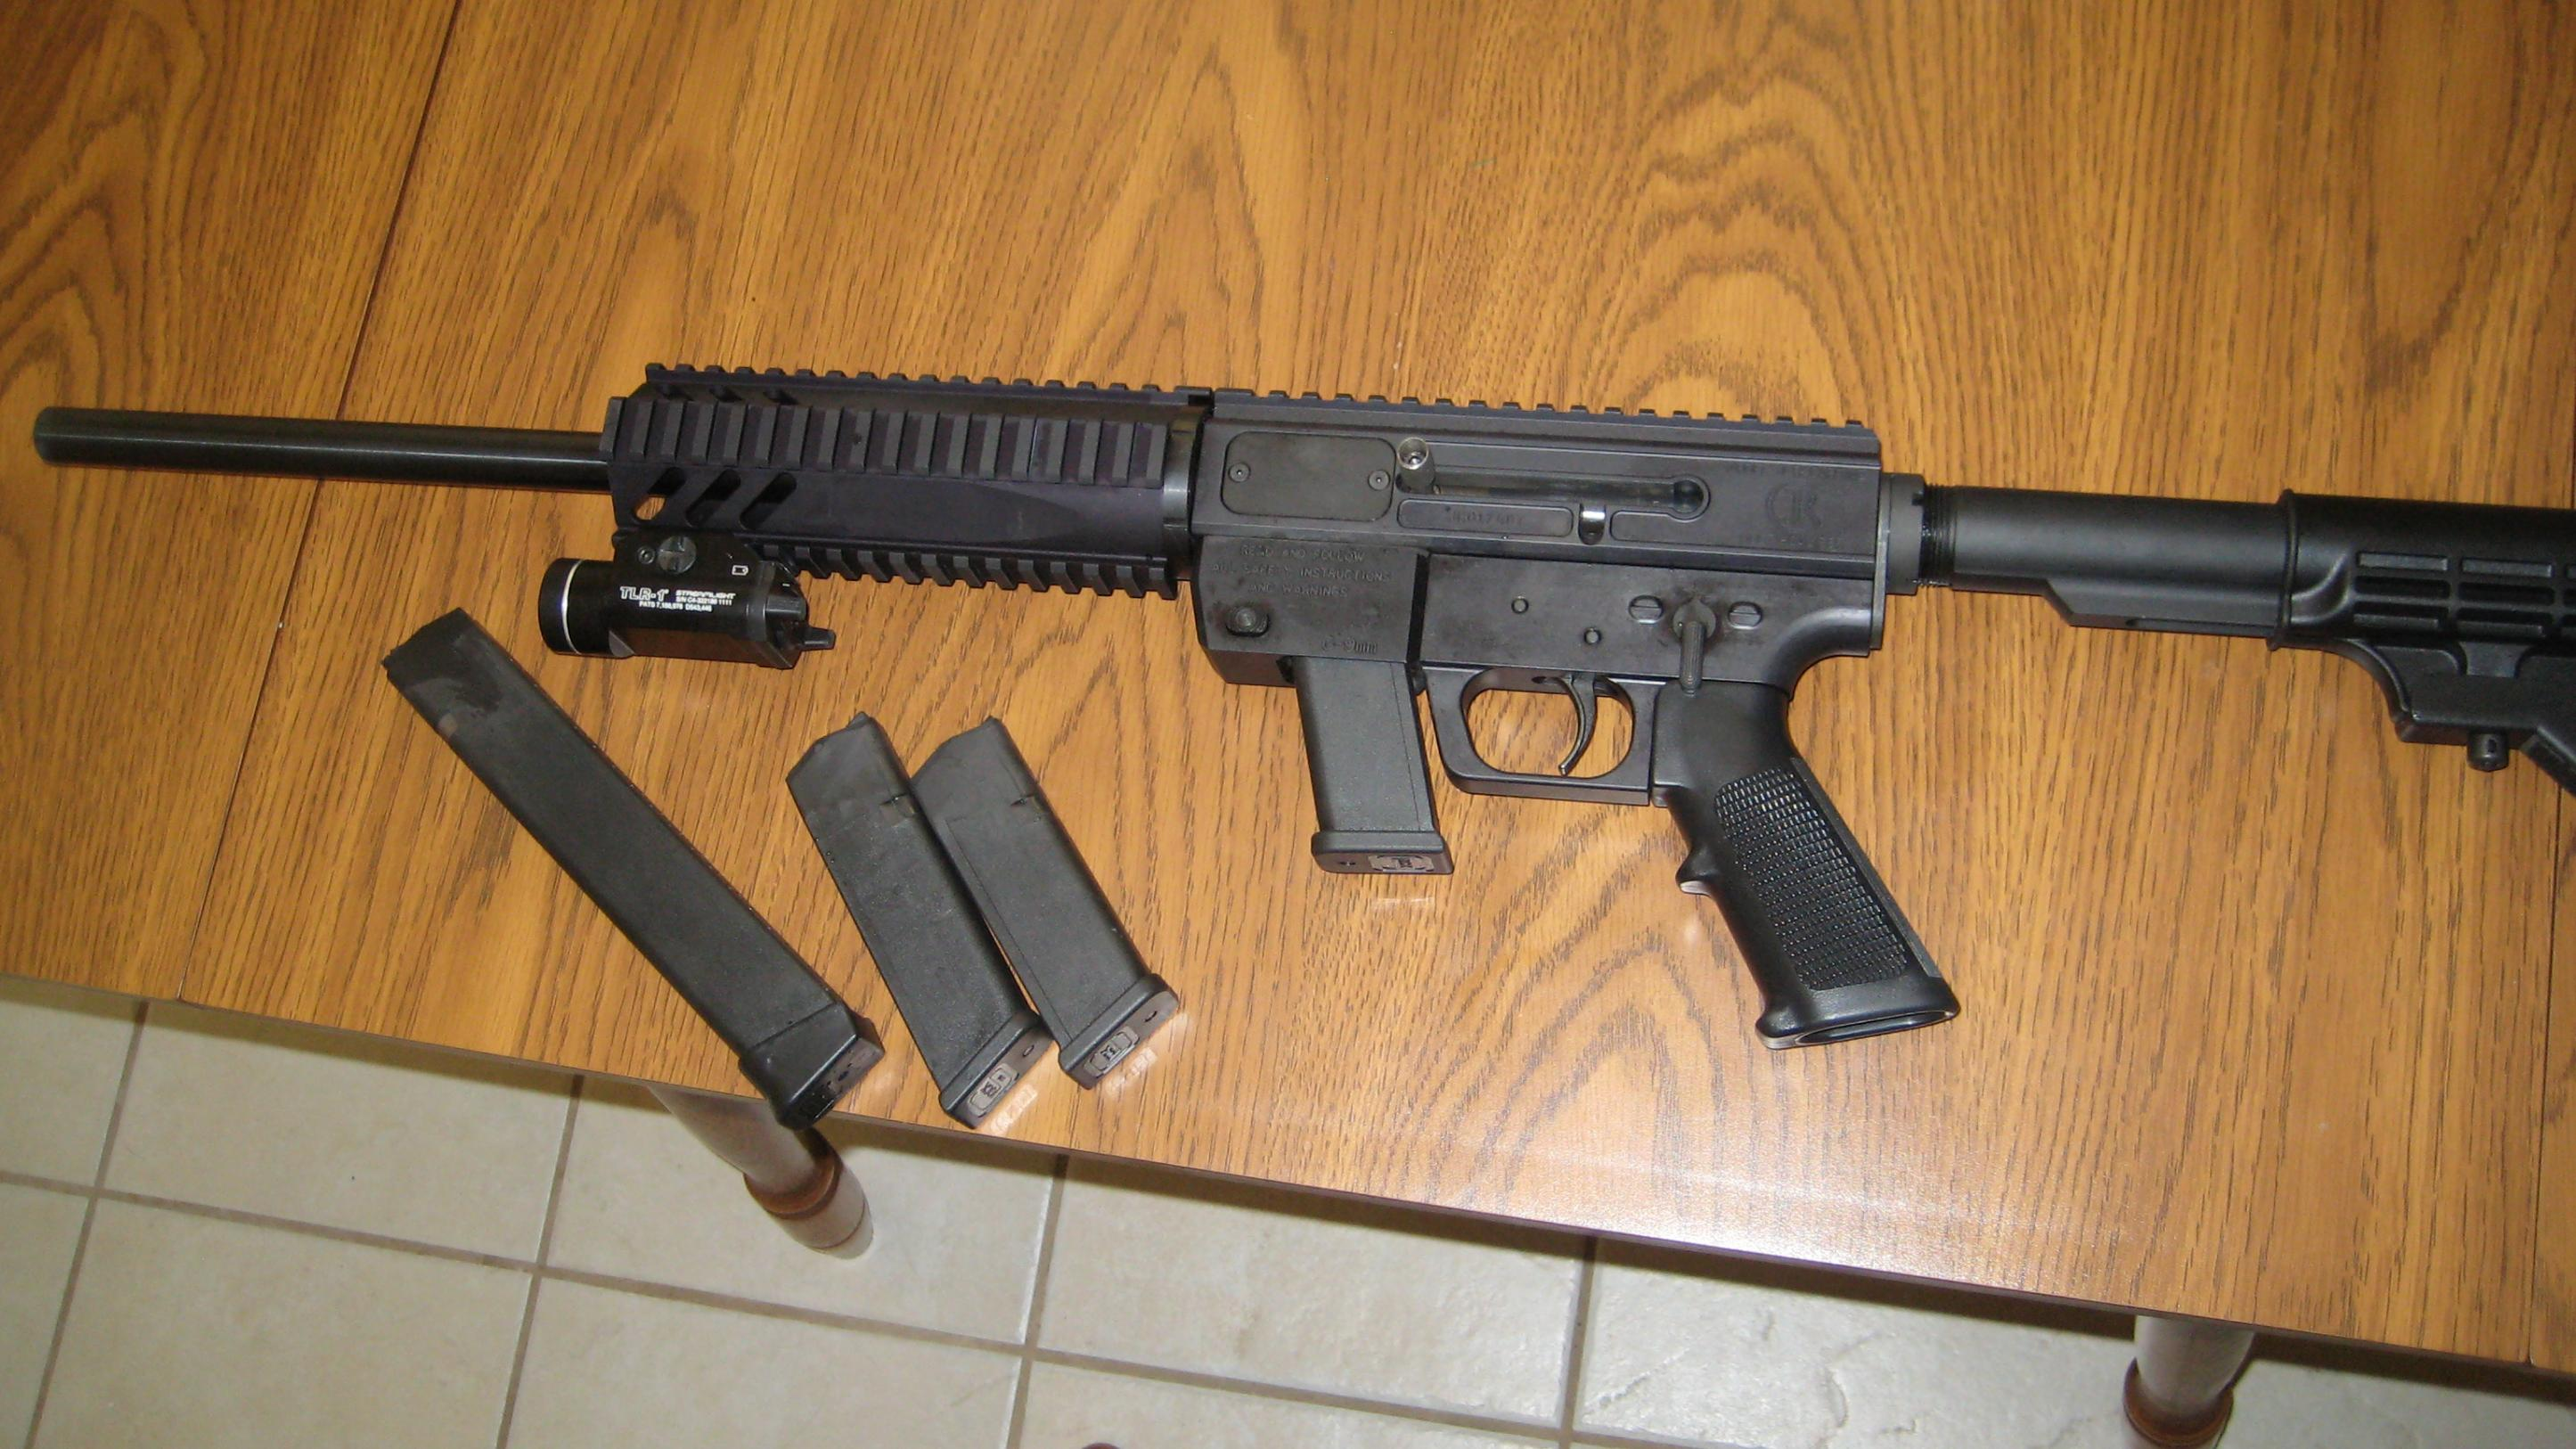 Just Right 9mm Carbine - A Range Report-img_0719-1-.jpg